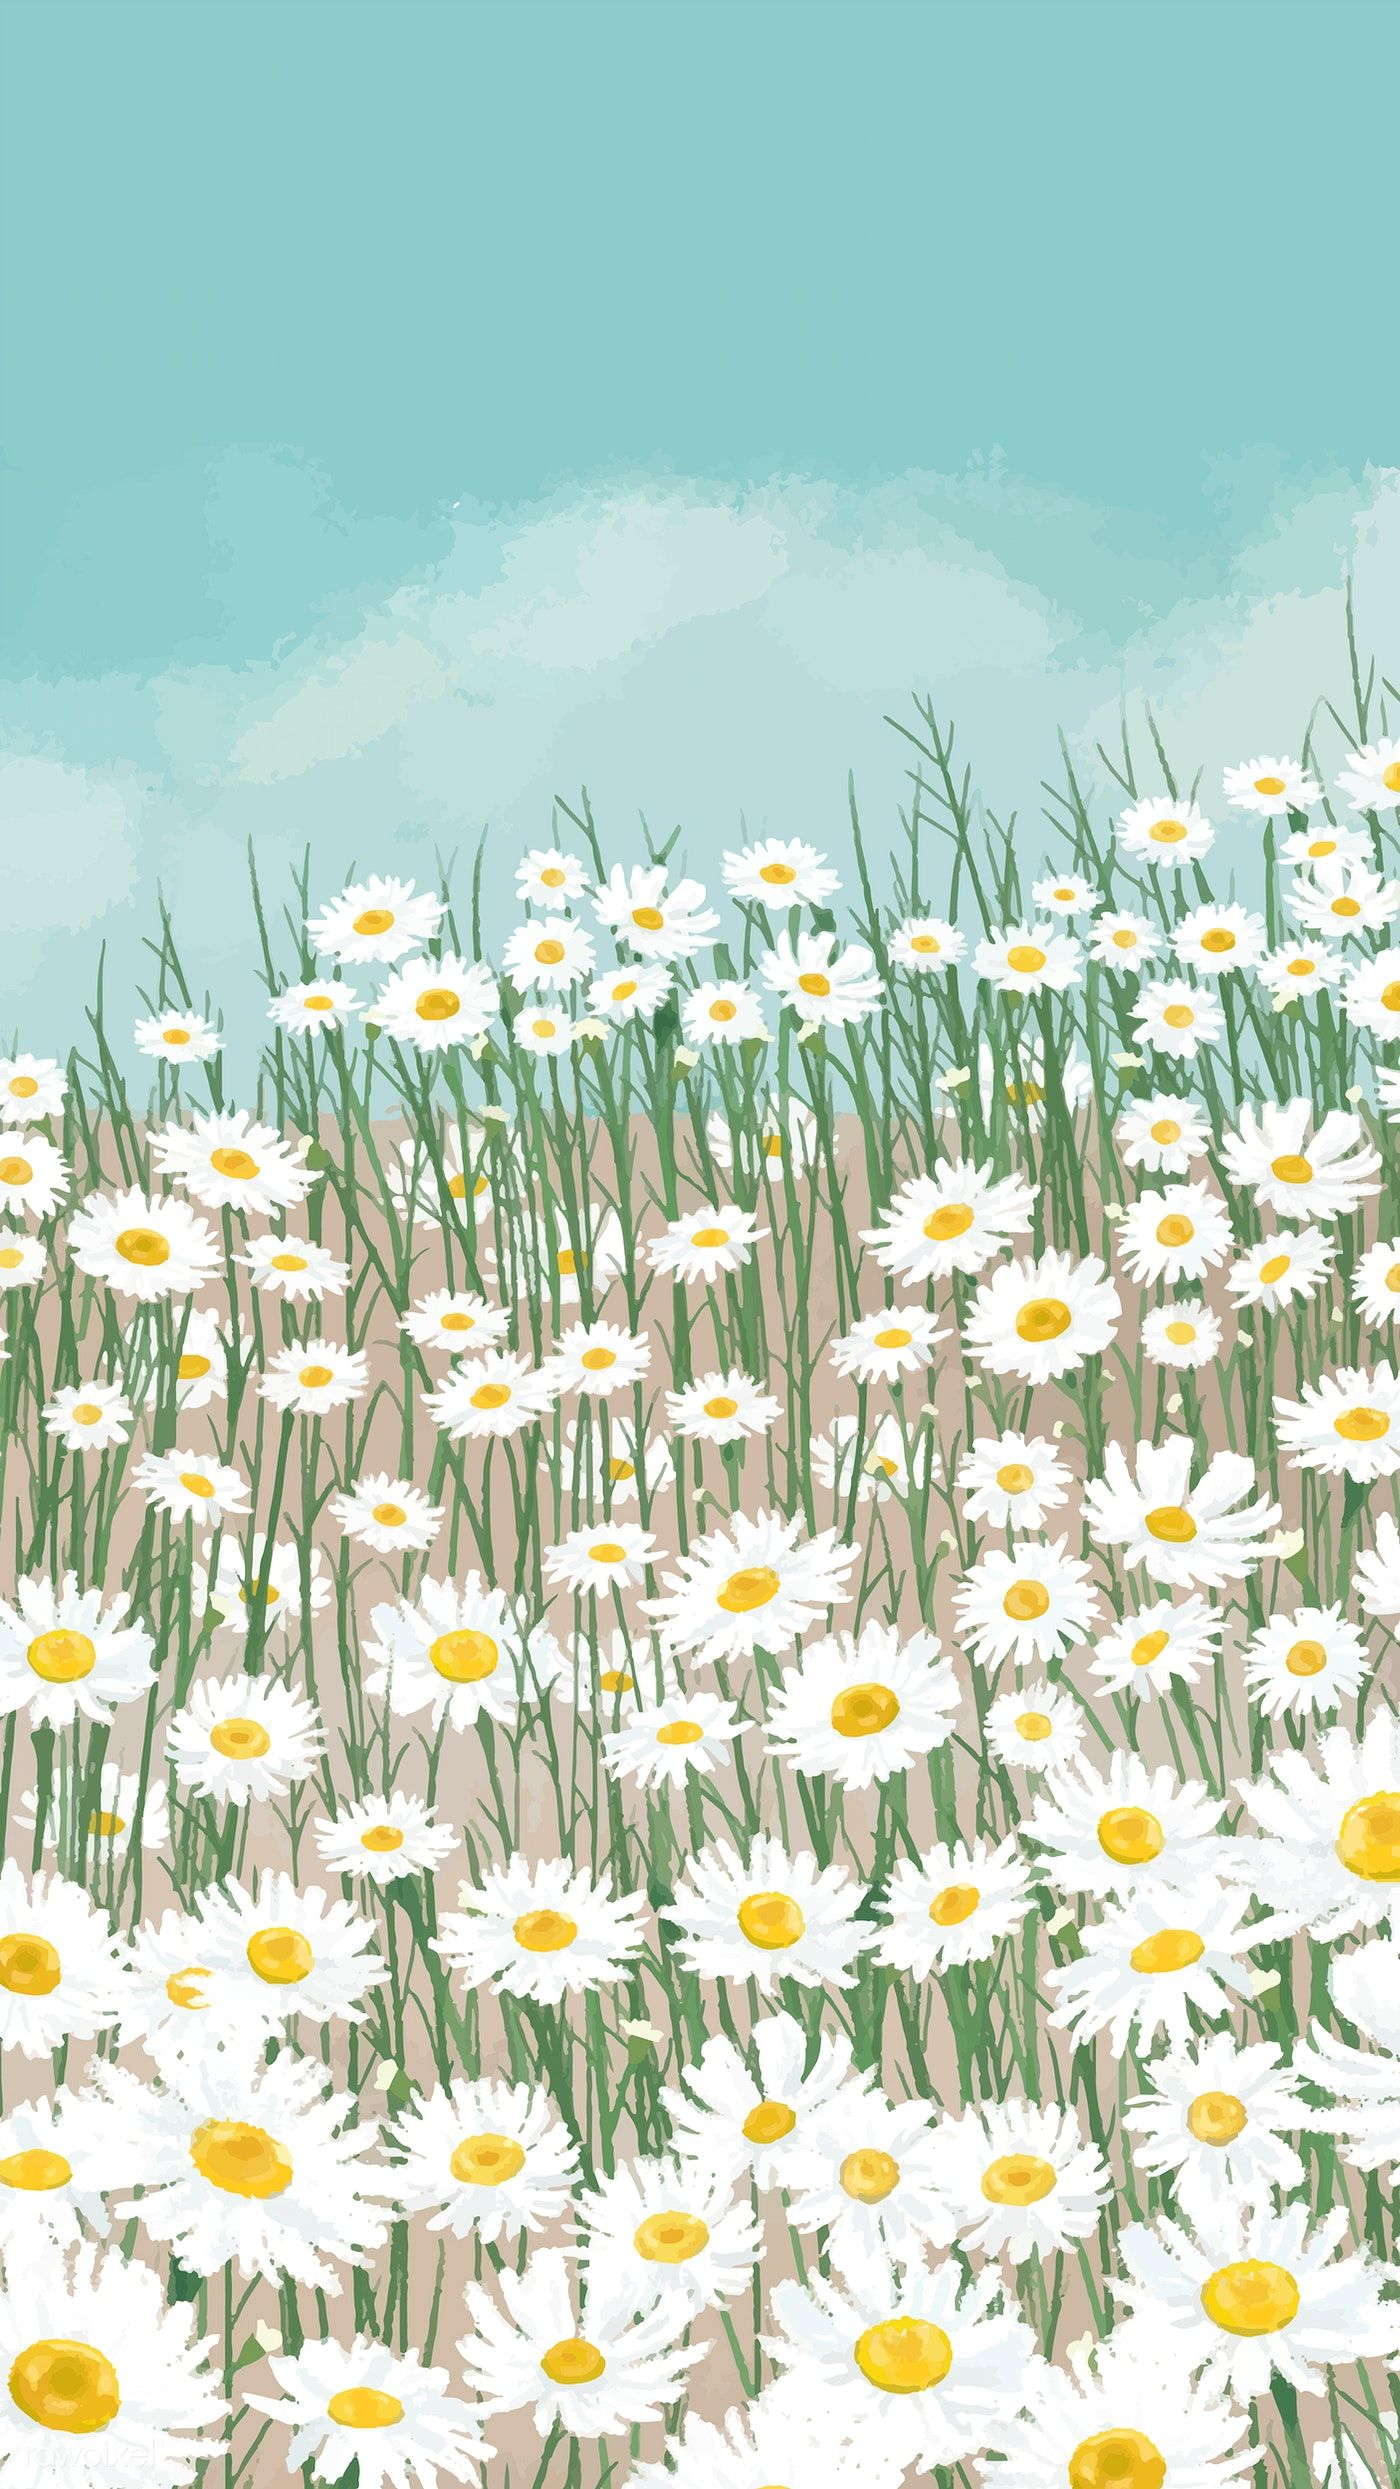 Download Premium Vector Of Blooming White Daisy Flower Mobile Phone Flower Phone Wallpaper Scenery Wallpaper Daisy Wallpaper